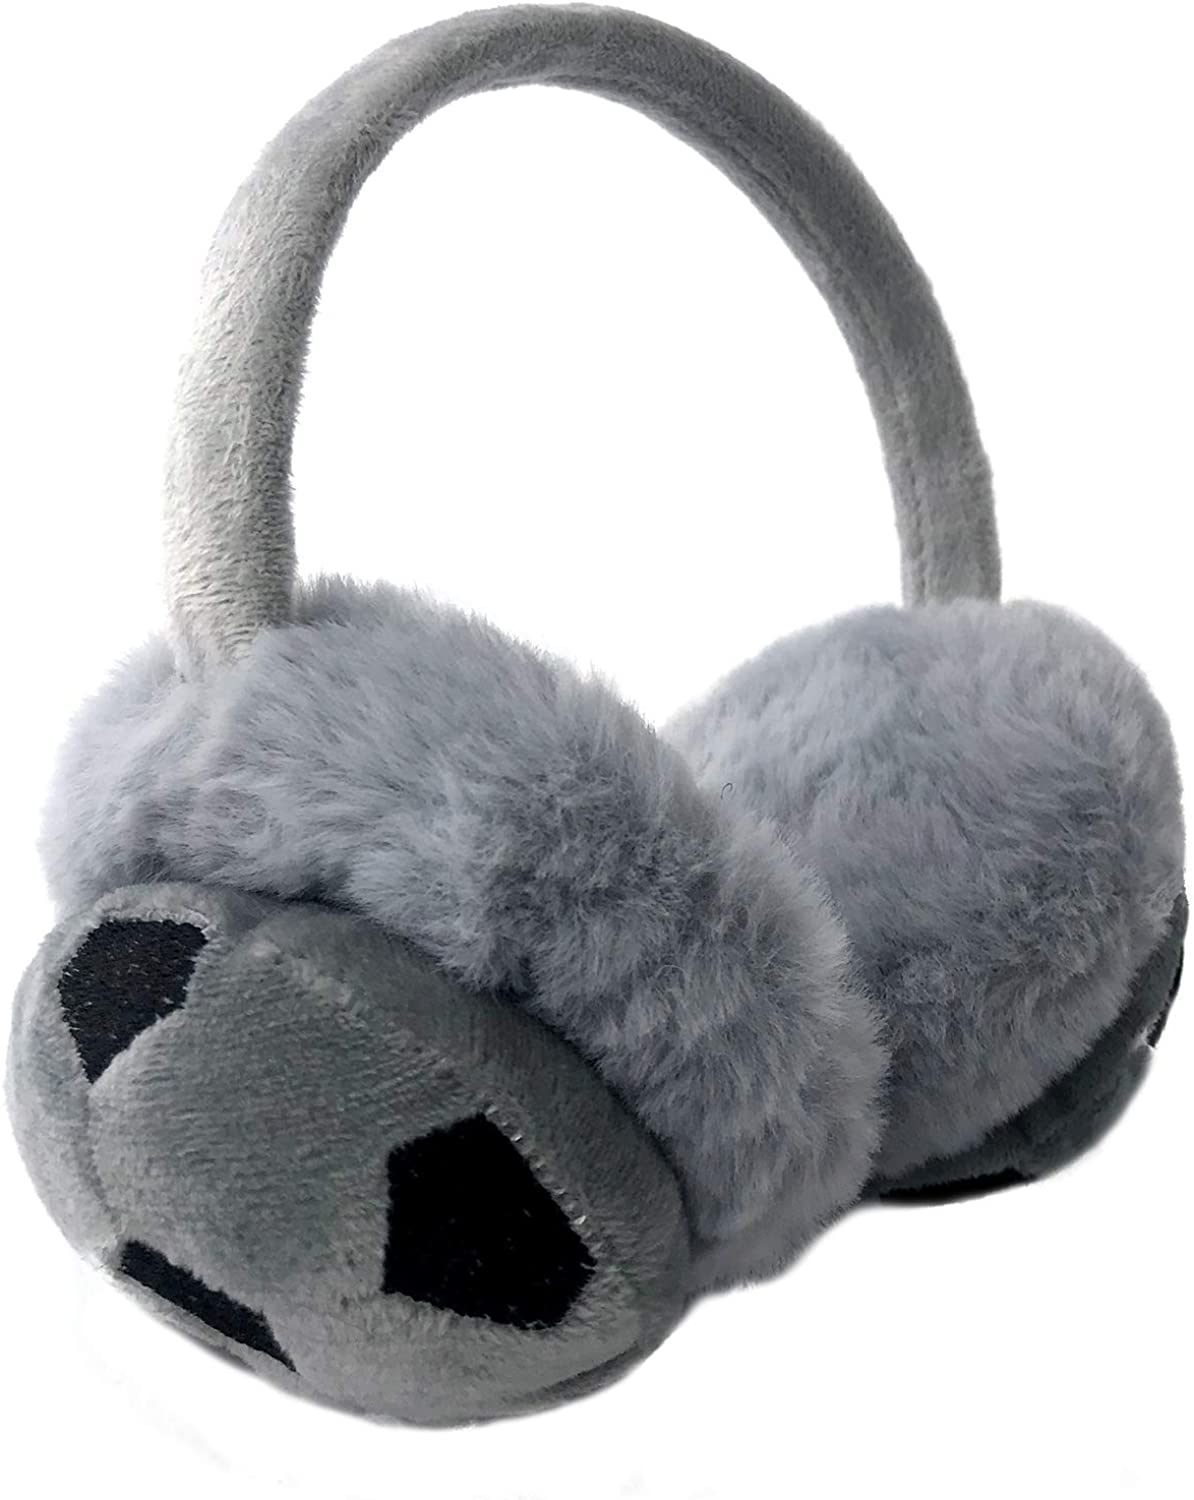 Kids Earmuffs Football Pattern Design Winter Outdoor Warm Ear Warmers Protection Birthday Xmas Gifts for Boys Girls